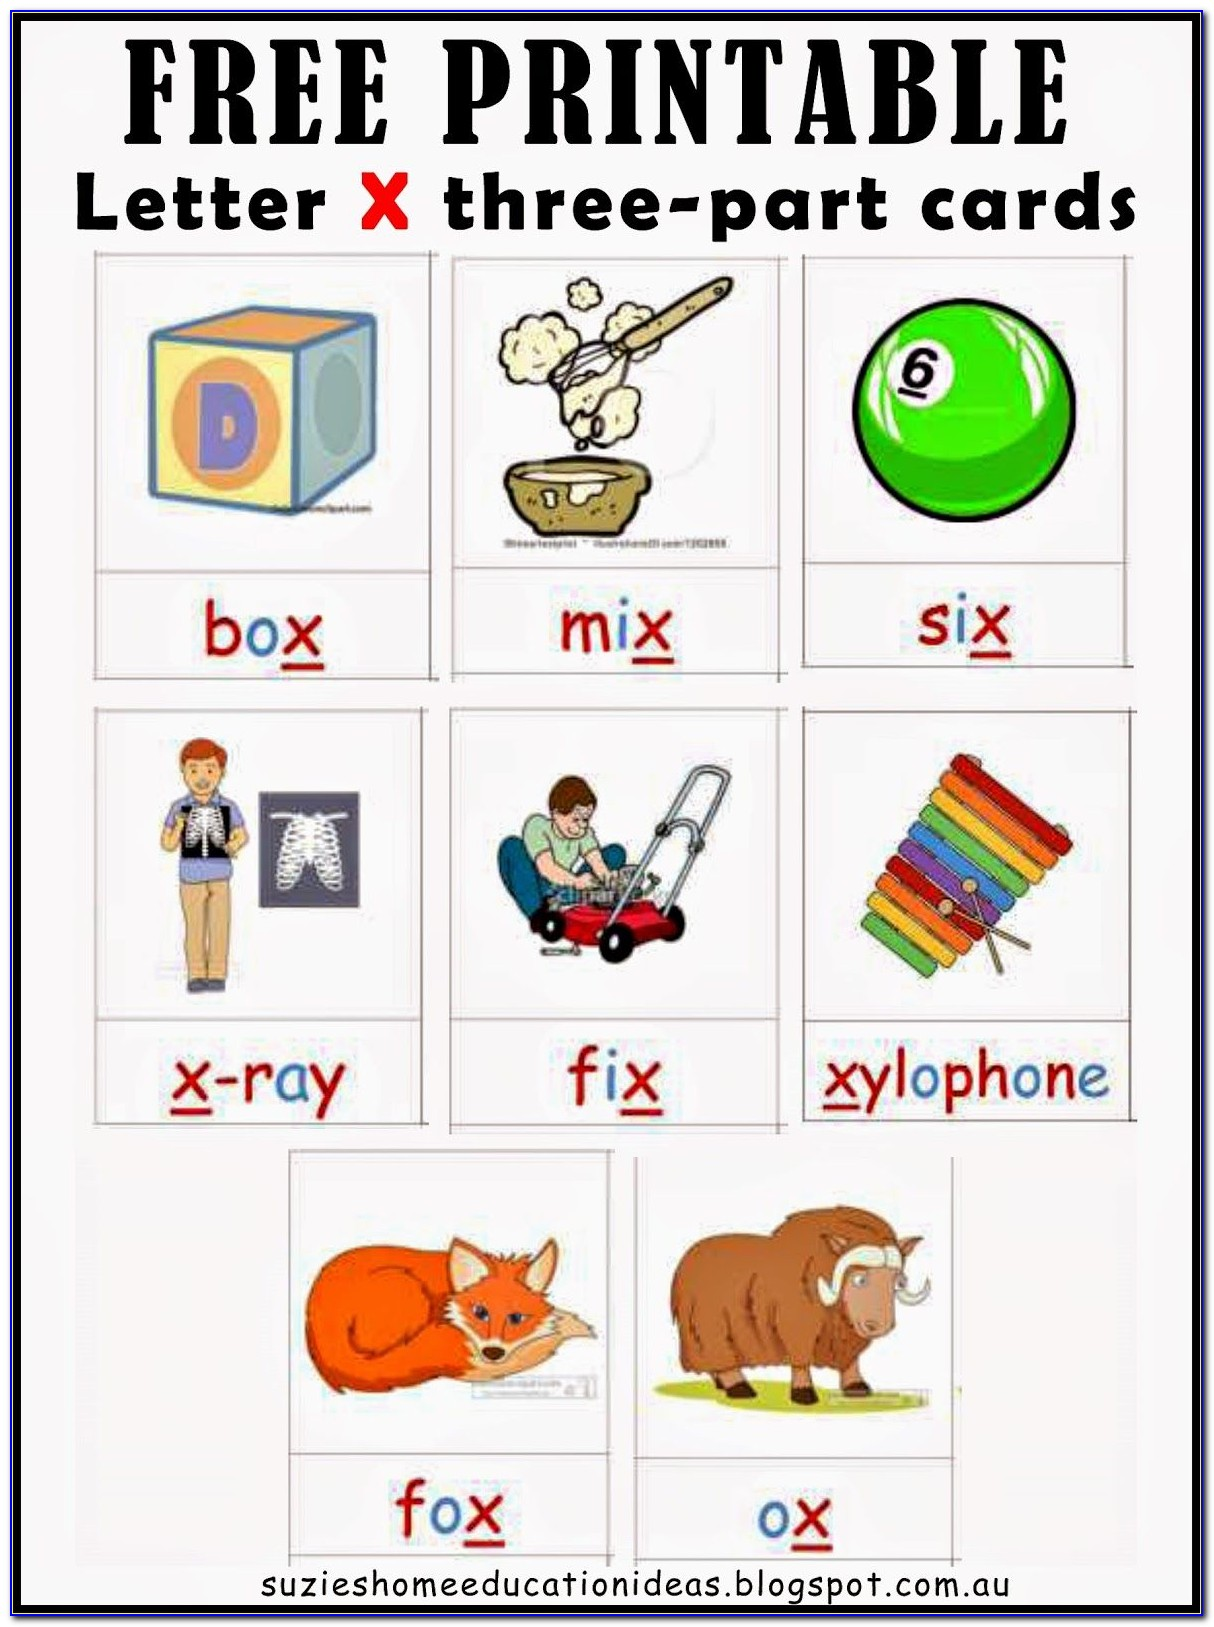 7 Letter Words Starting With V And Ending In E